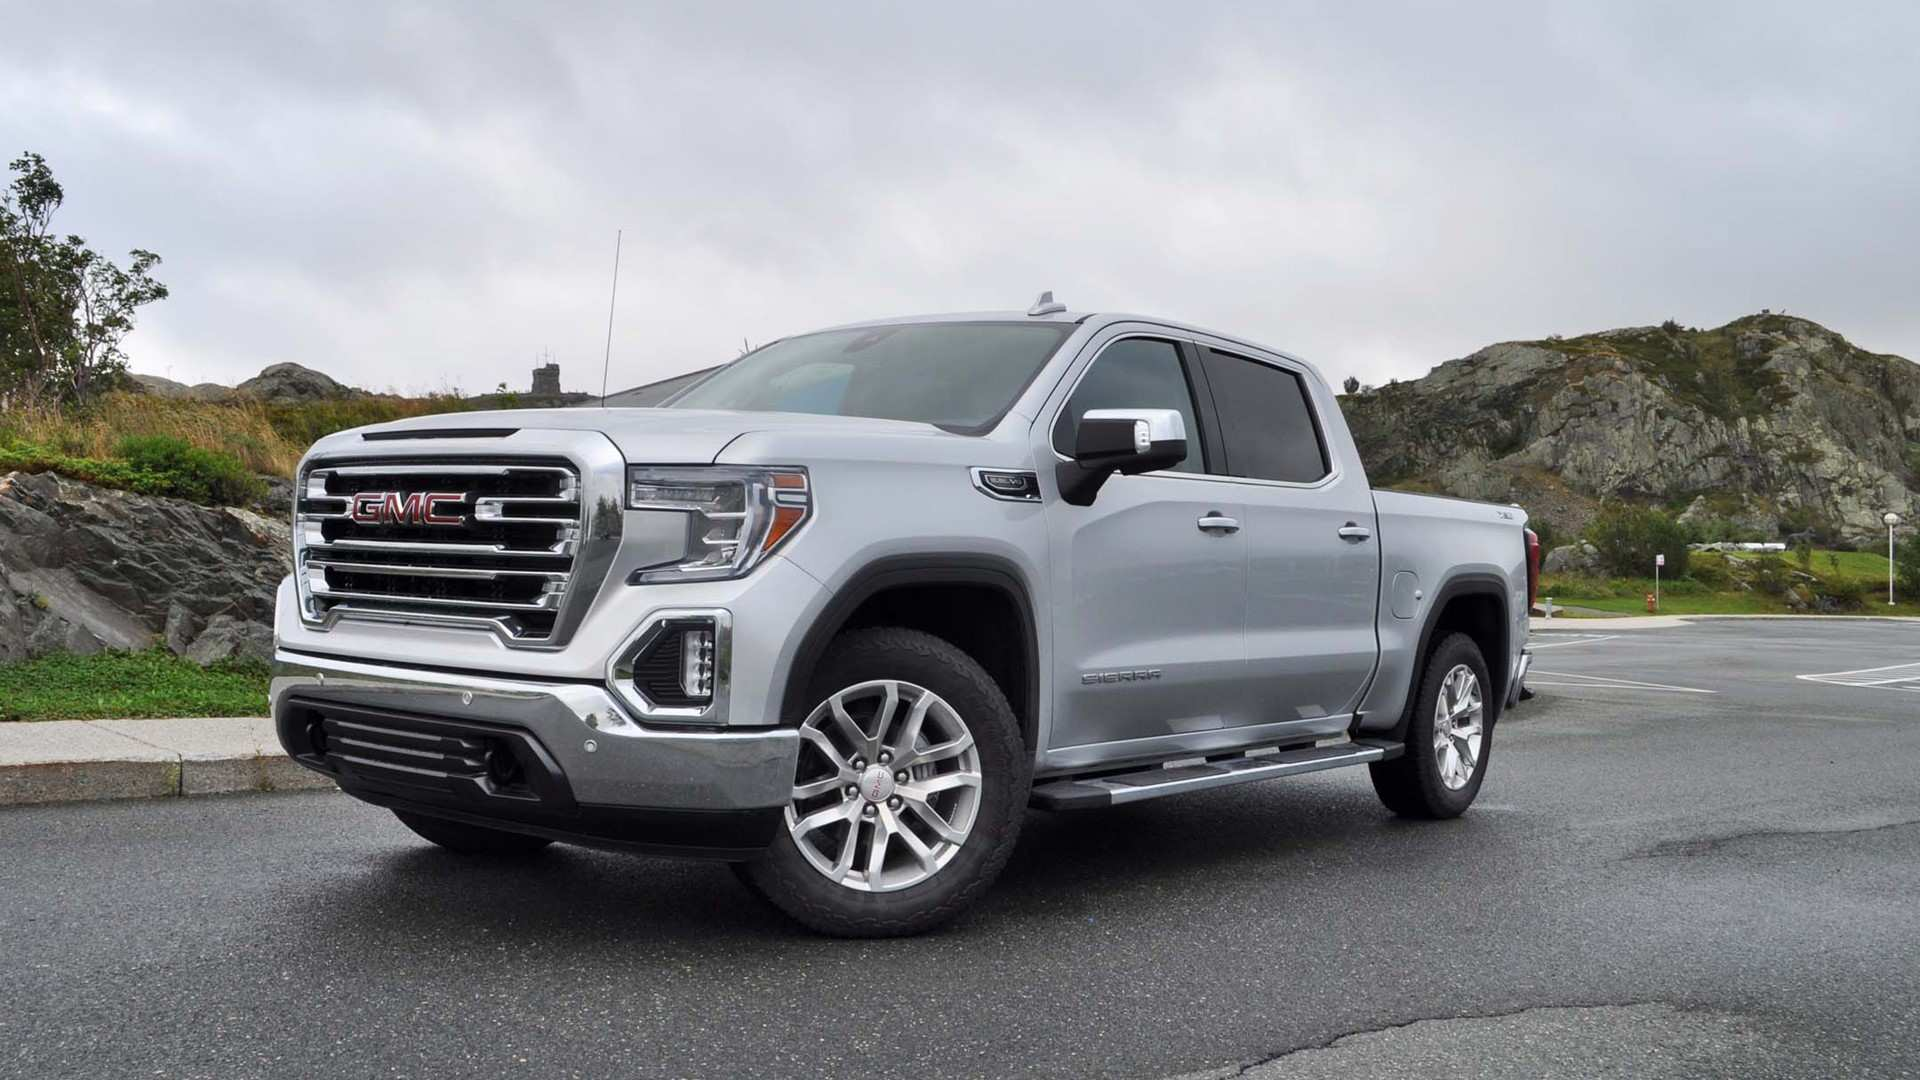 95 Concept of 2019 Gmc Engine Options Rumors for 2019 Gmc Engine Options